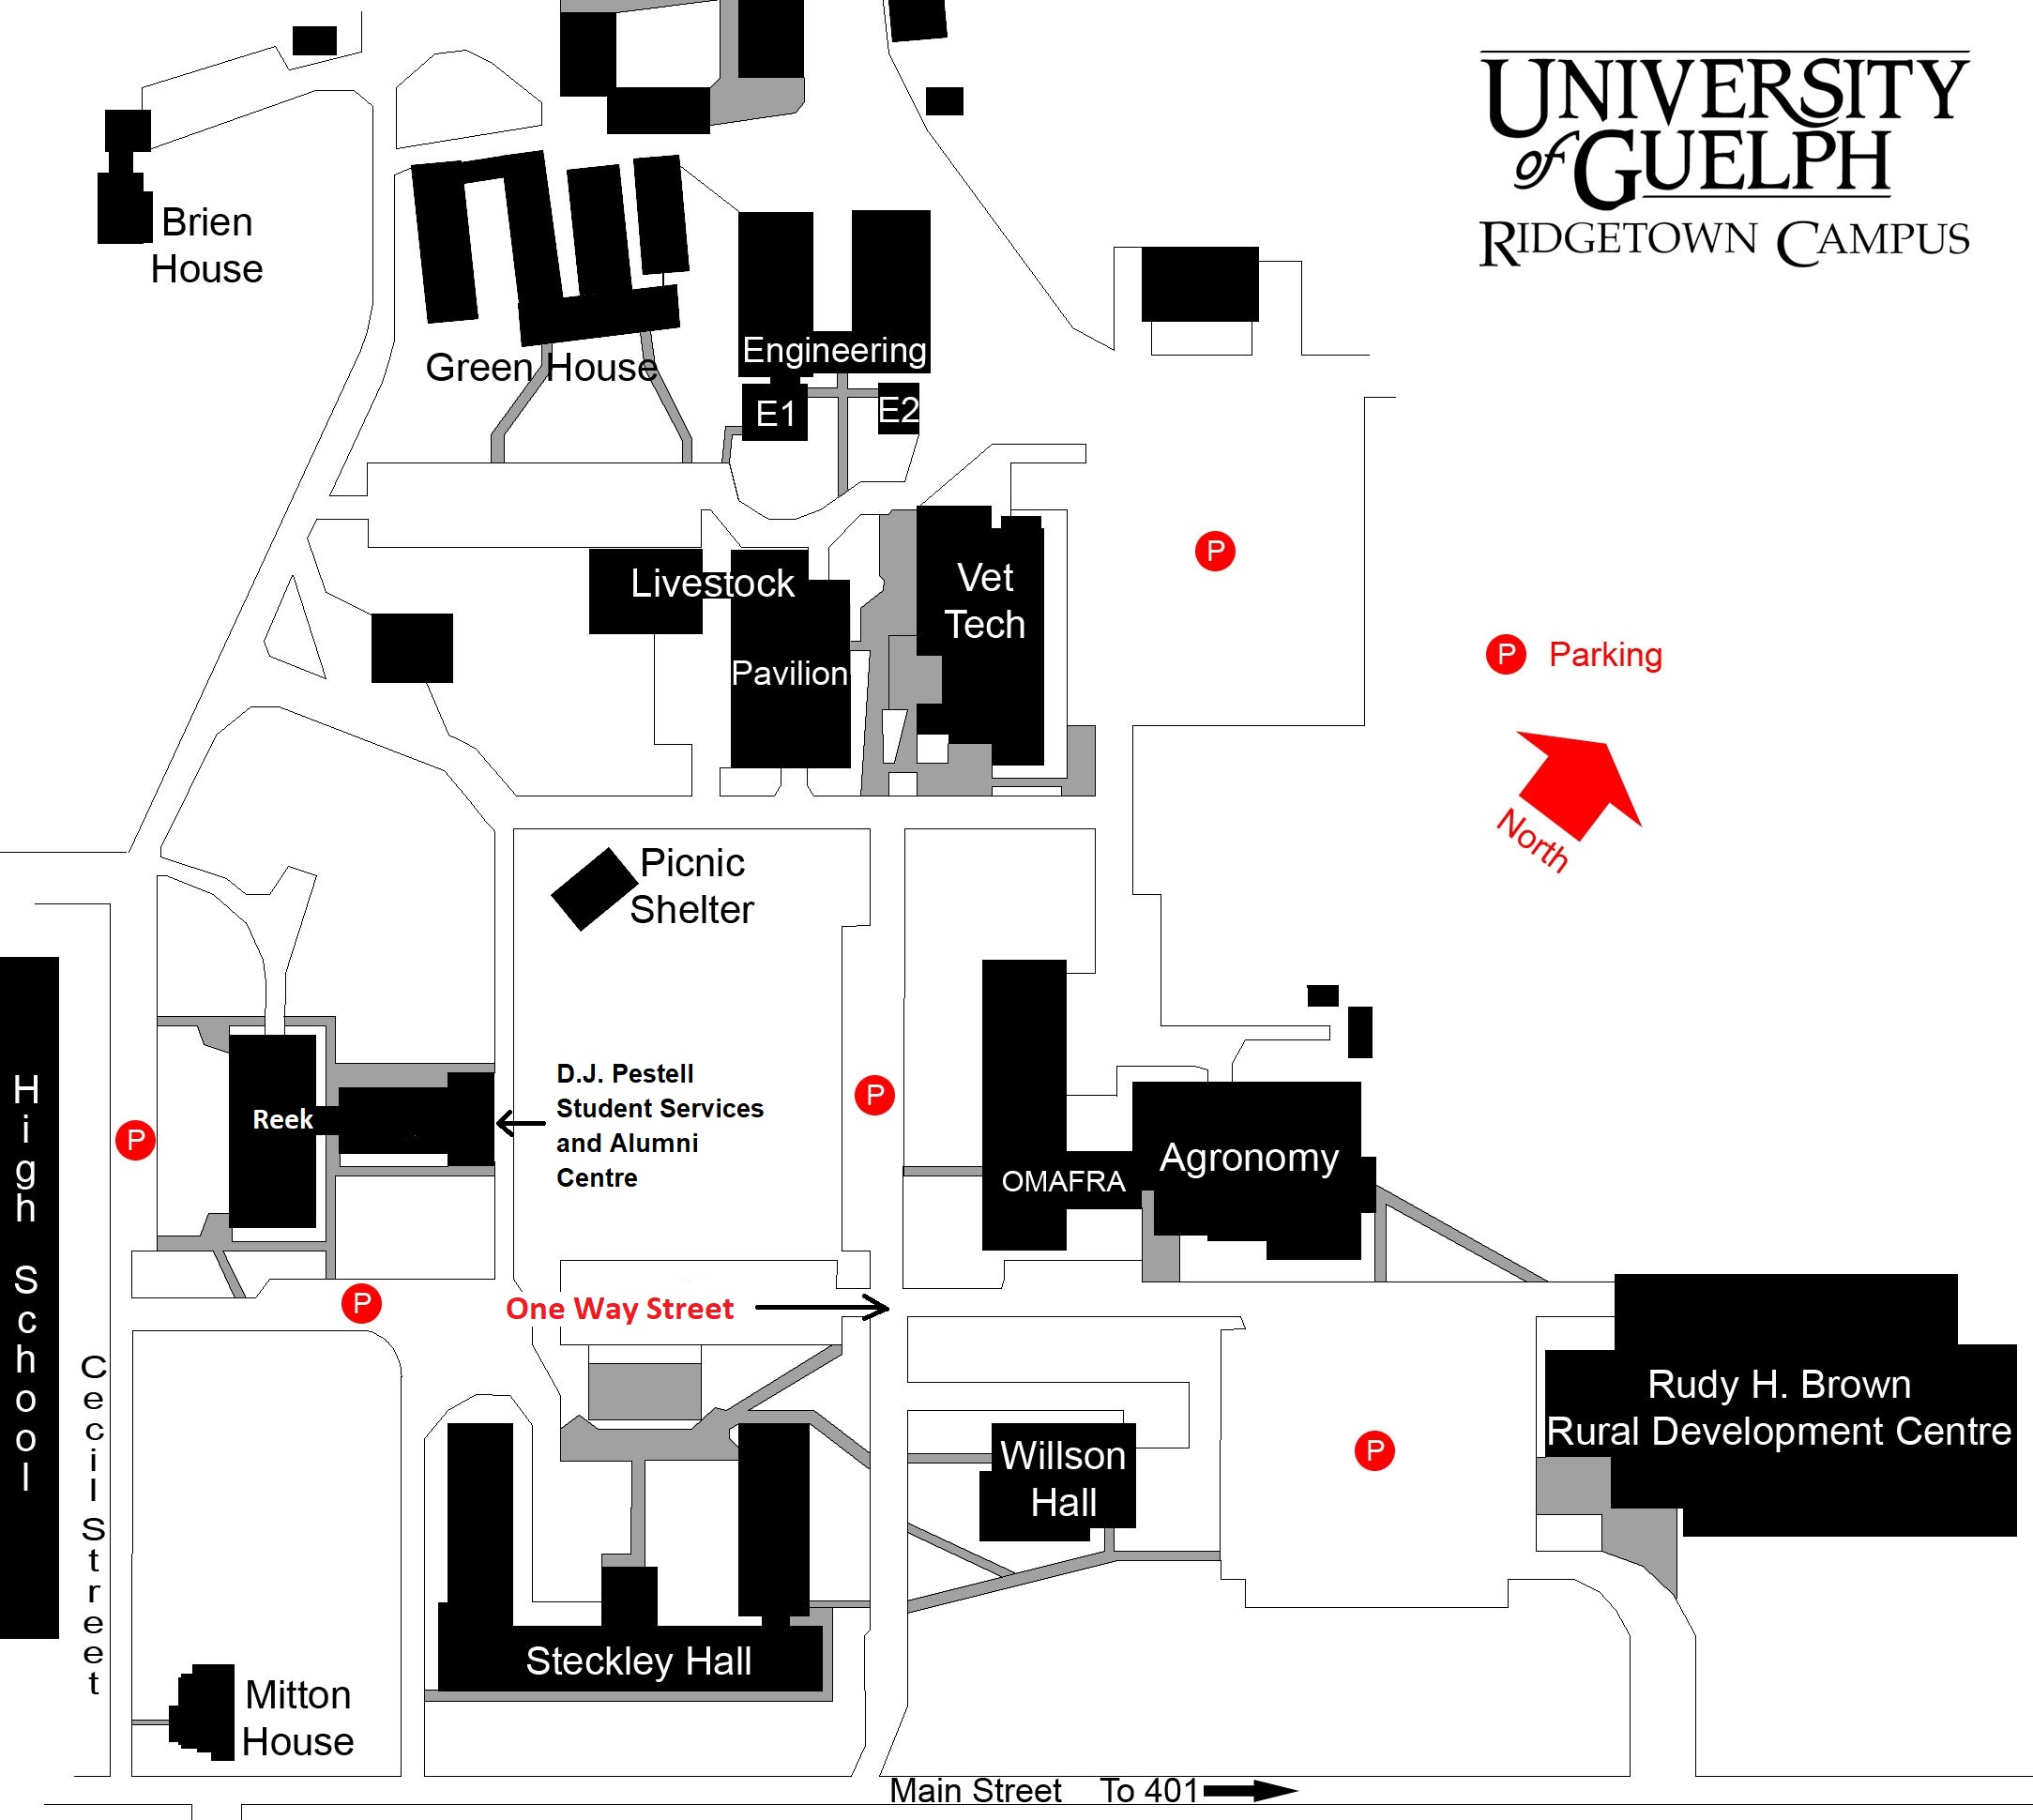 Map of the Ridgetown Campus